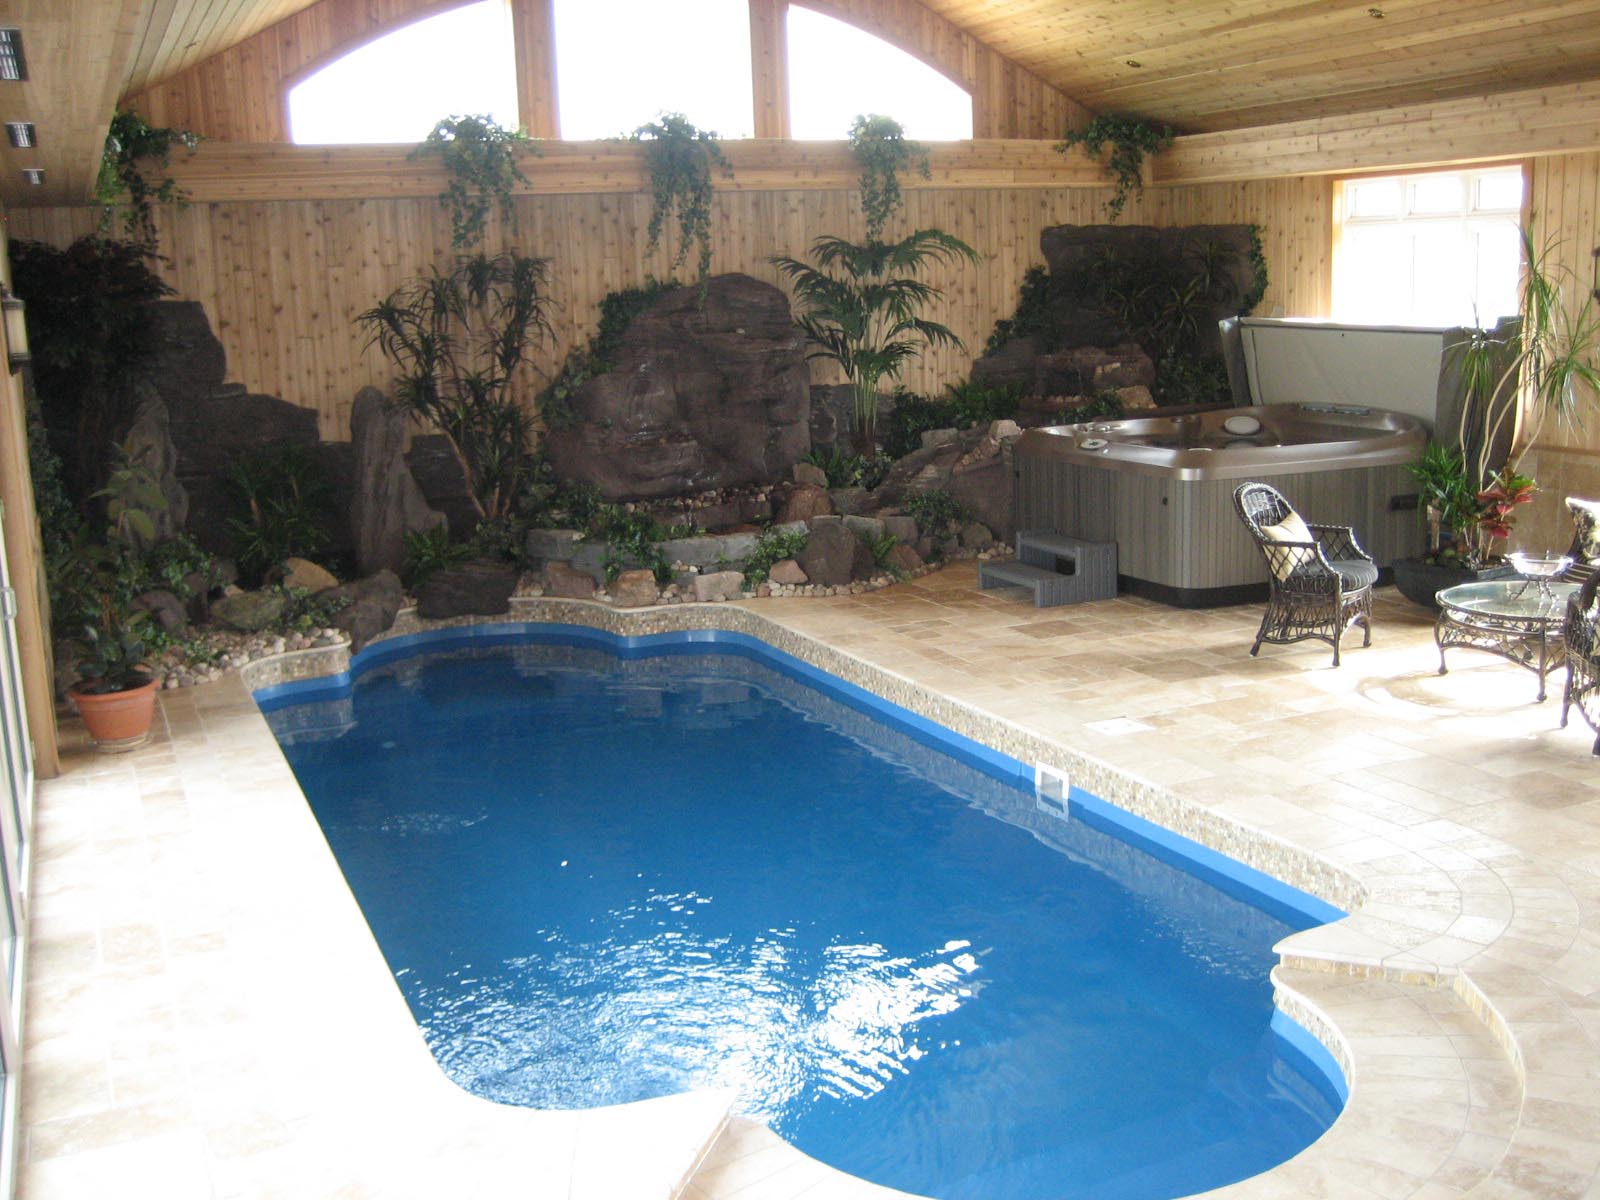 Home Indoor Pool small indoor pools for homes | backyard design ideas